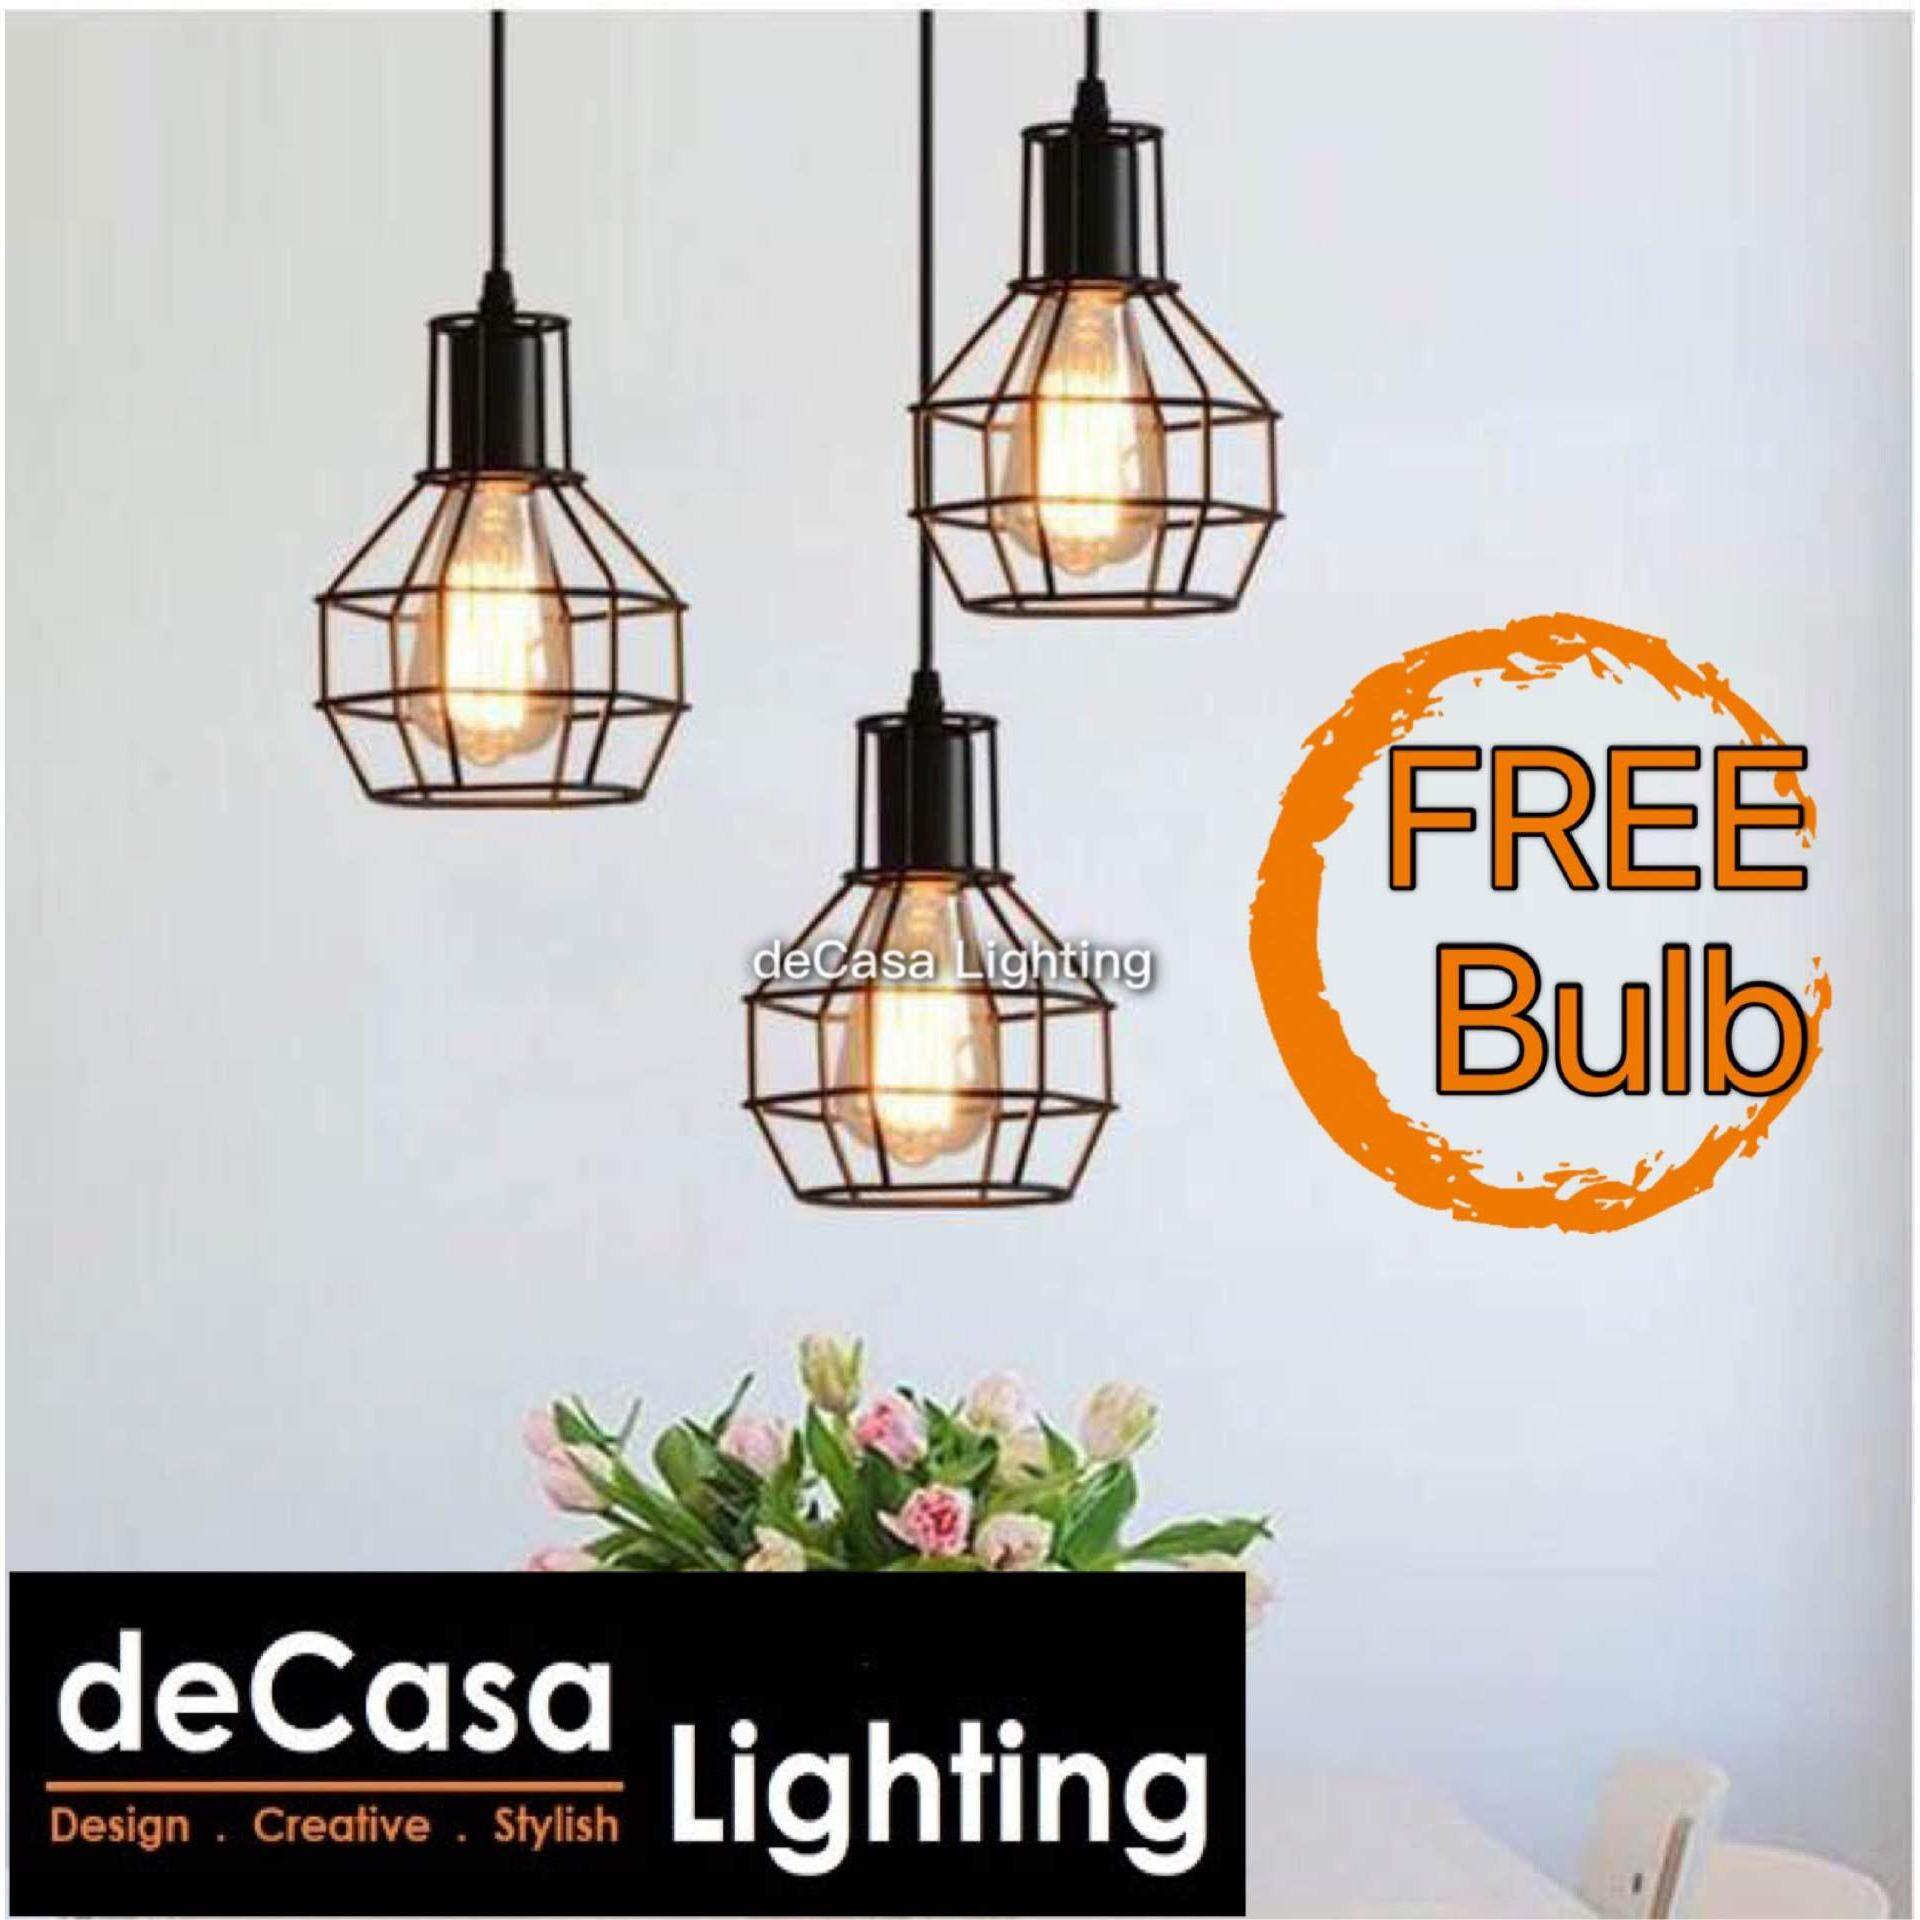 Ceiling Lights Pendants Light with Round Base Decasa Lighting Designer Decorative Ceiling Lights Pendants Light Set of 3(Black)  Loft Designer Decorative DECASA Pendant Light Ceiling Light Best Seller Lighting (MH-0180-BK-3RB)